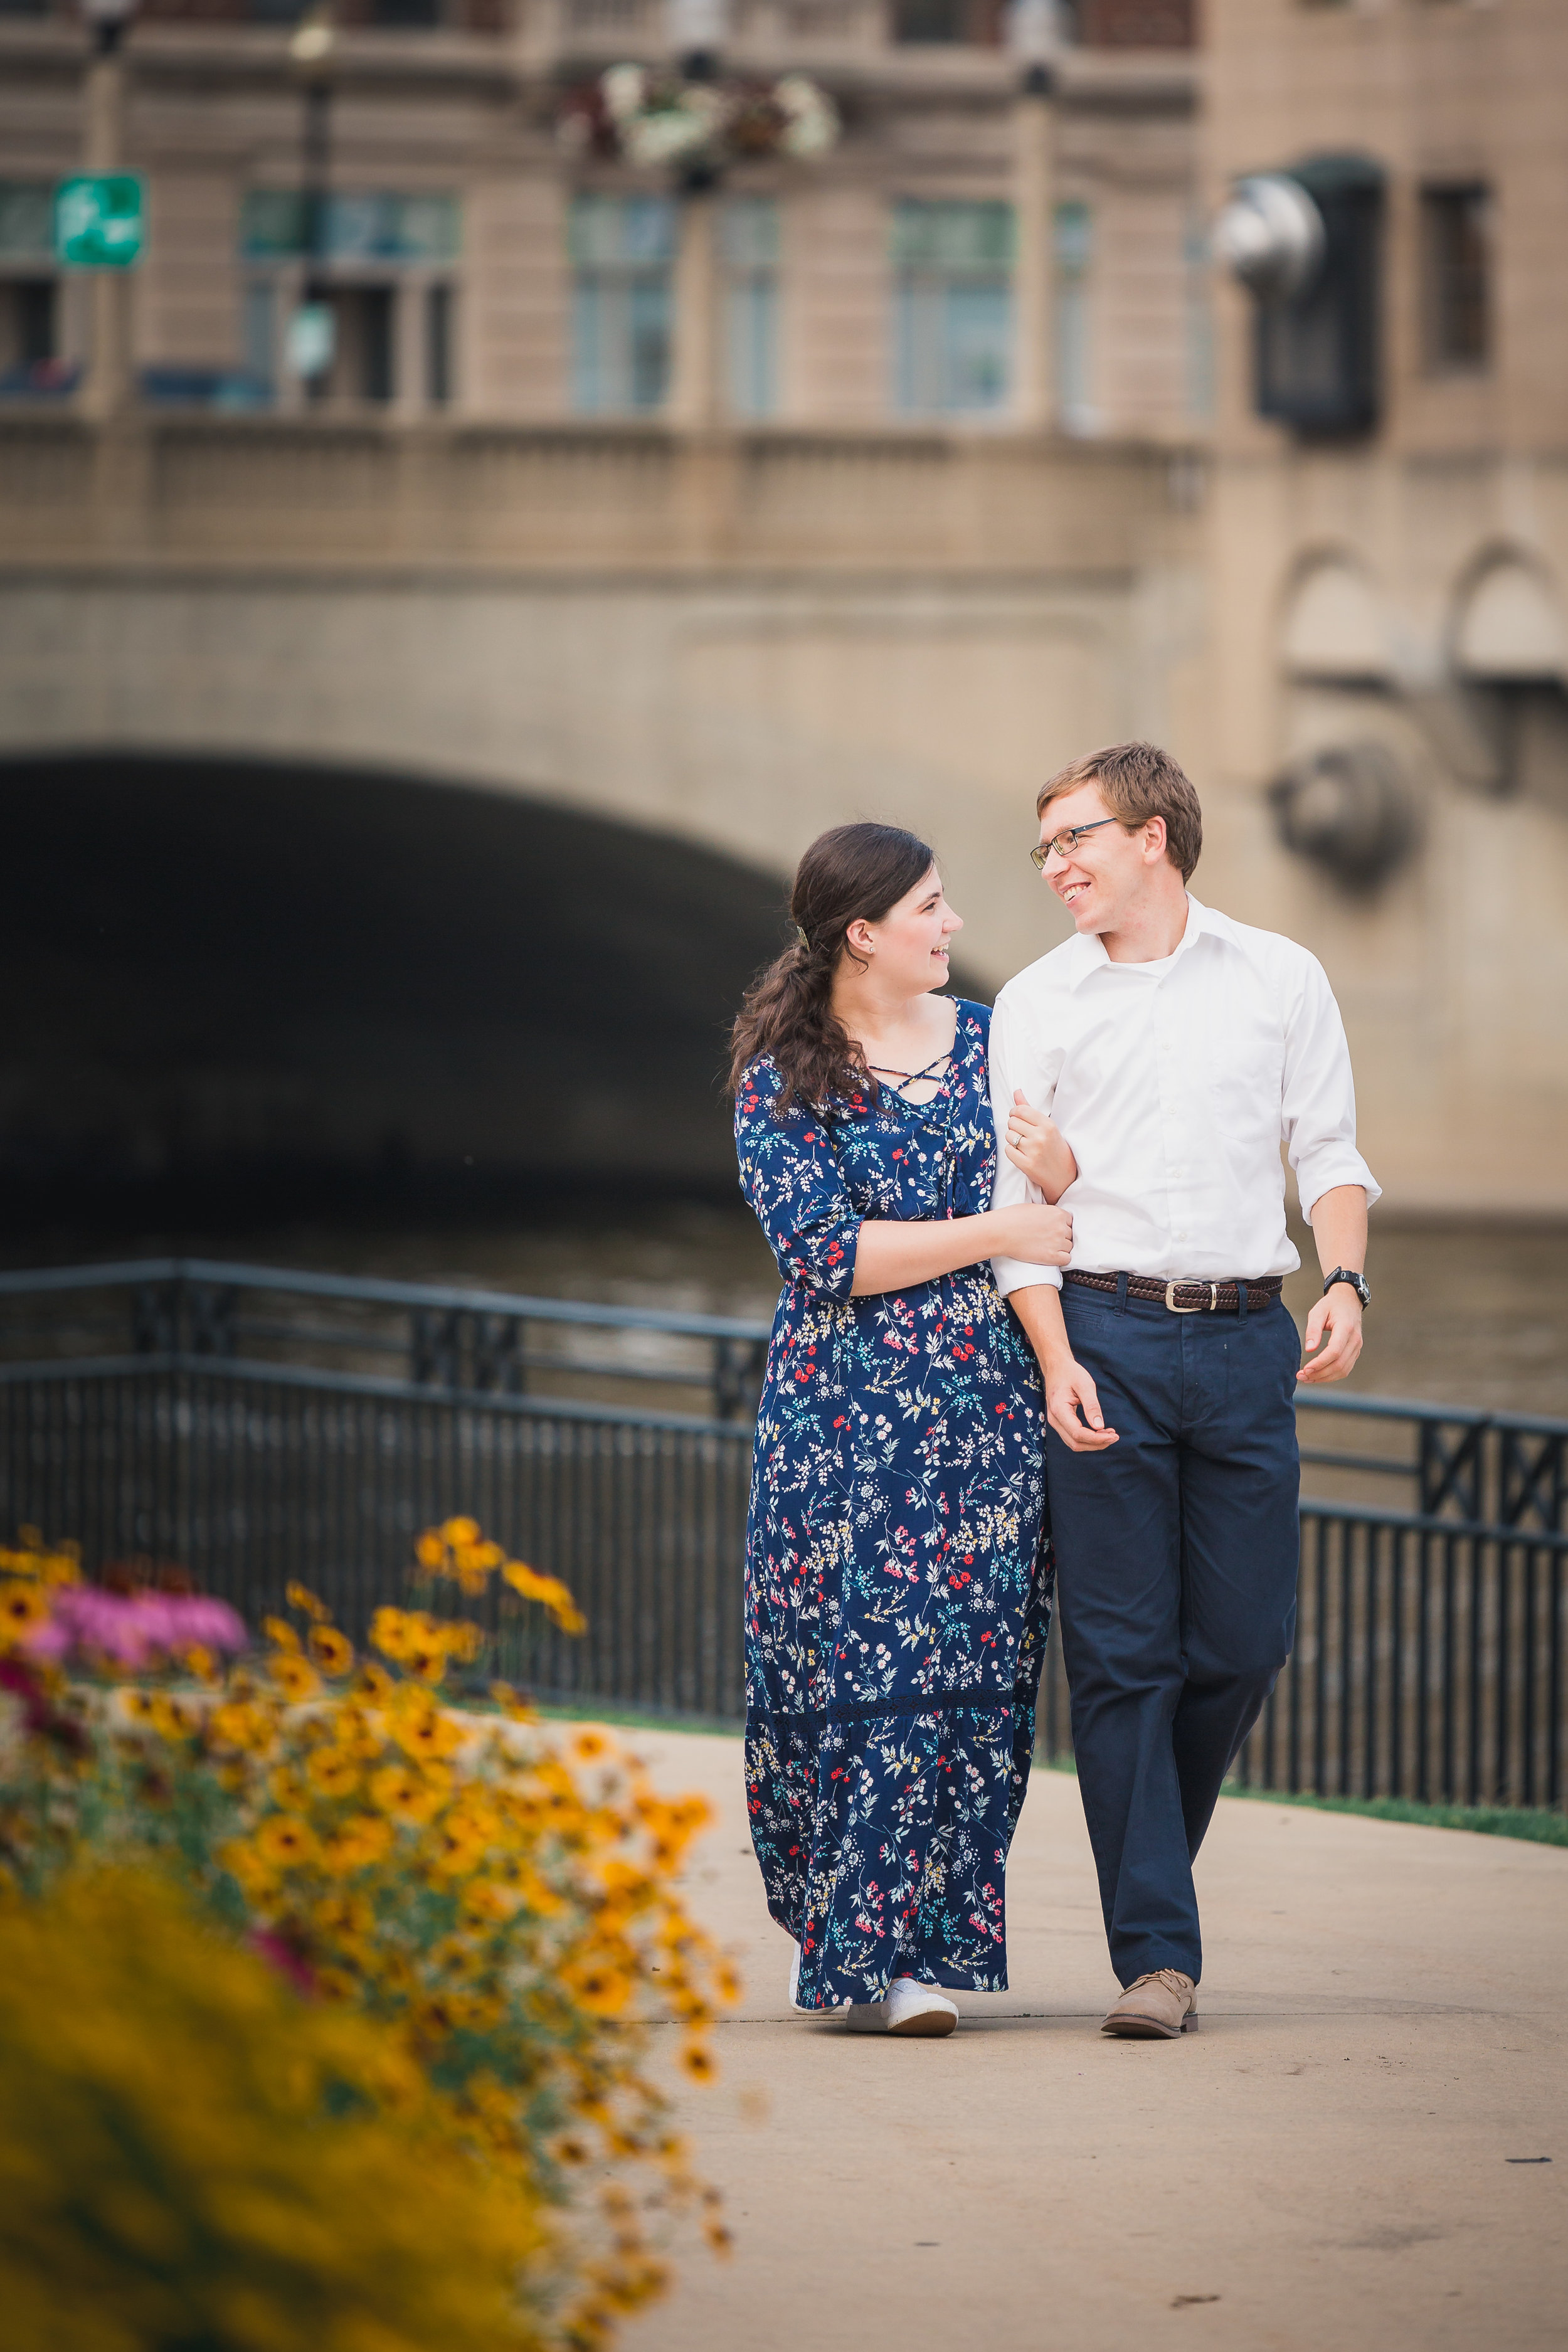 20180620_leslie_and_grant_engagement_49_5N3A4147.jpg